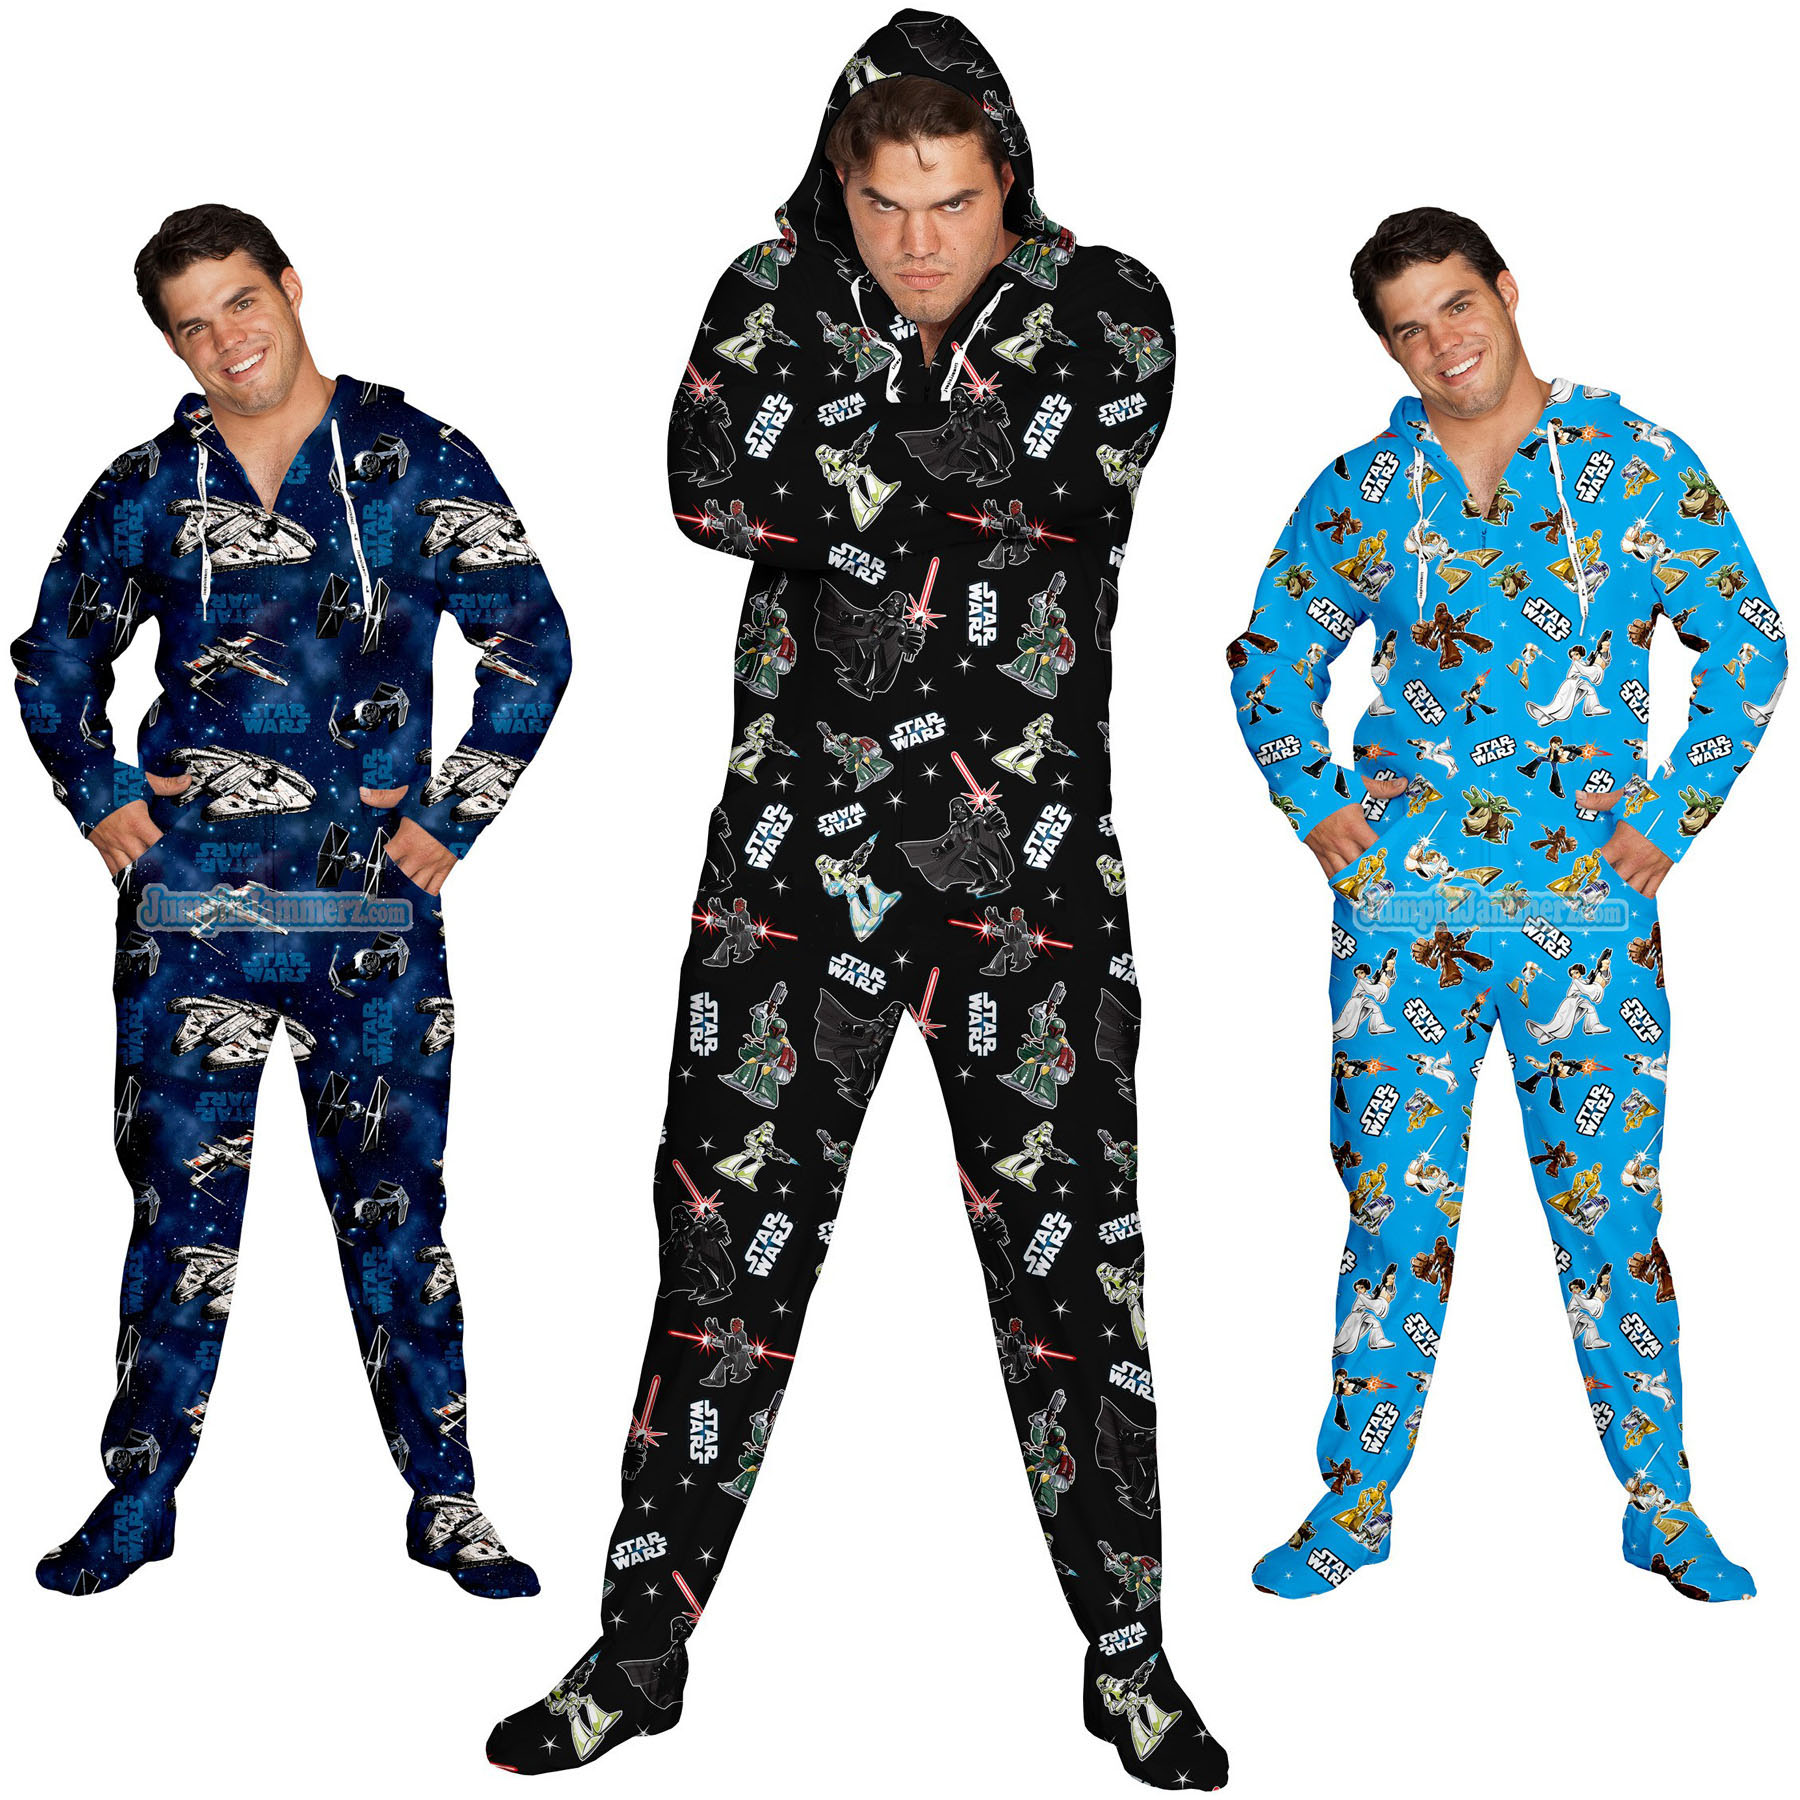 Star wars footed pajamas these footies are loaded with extras